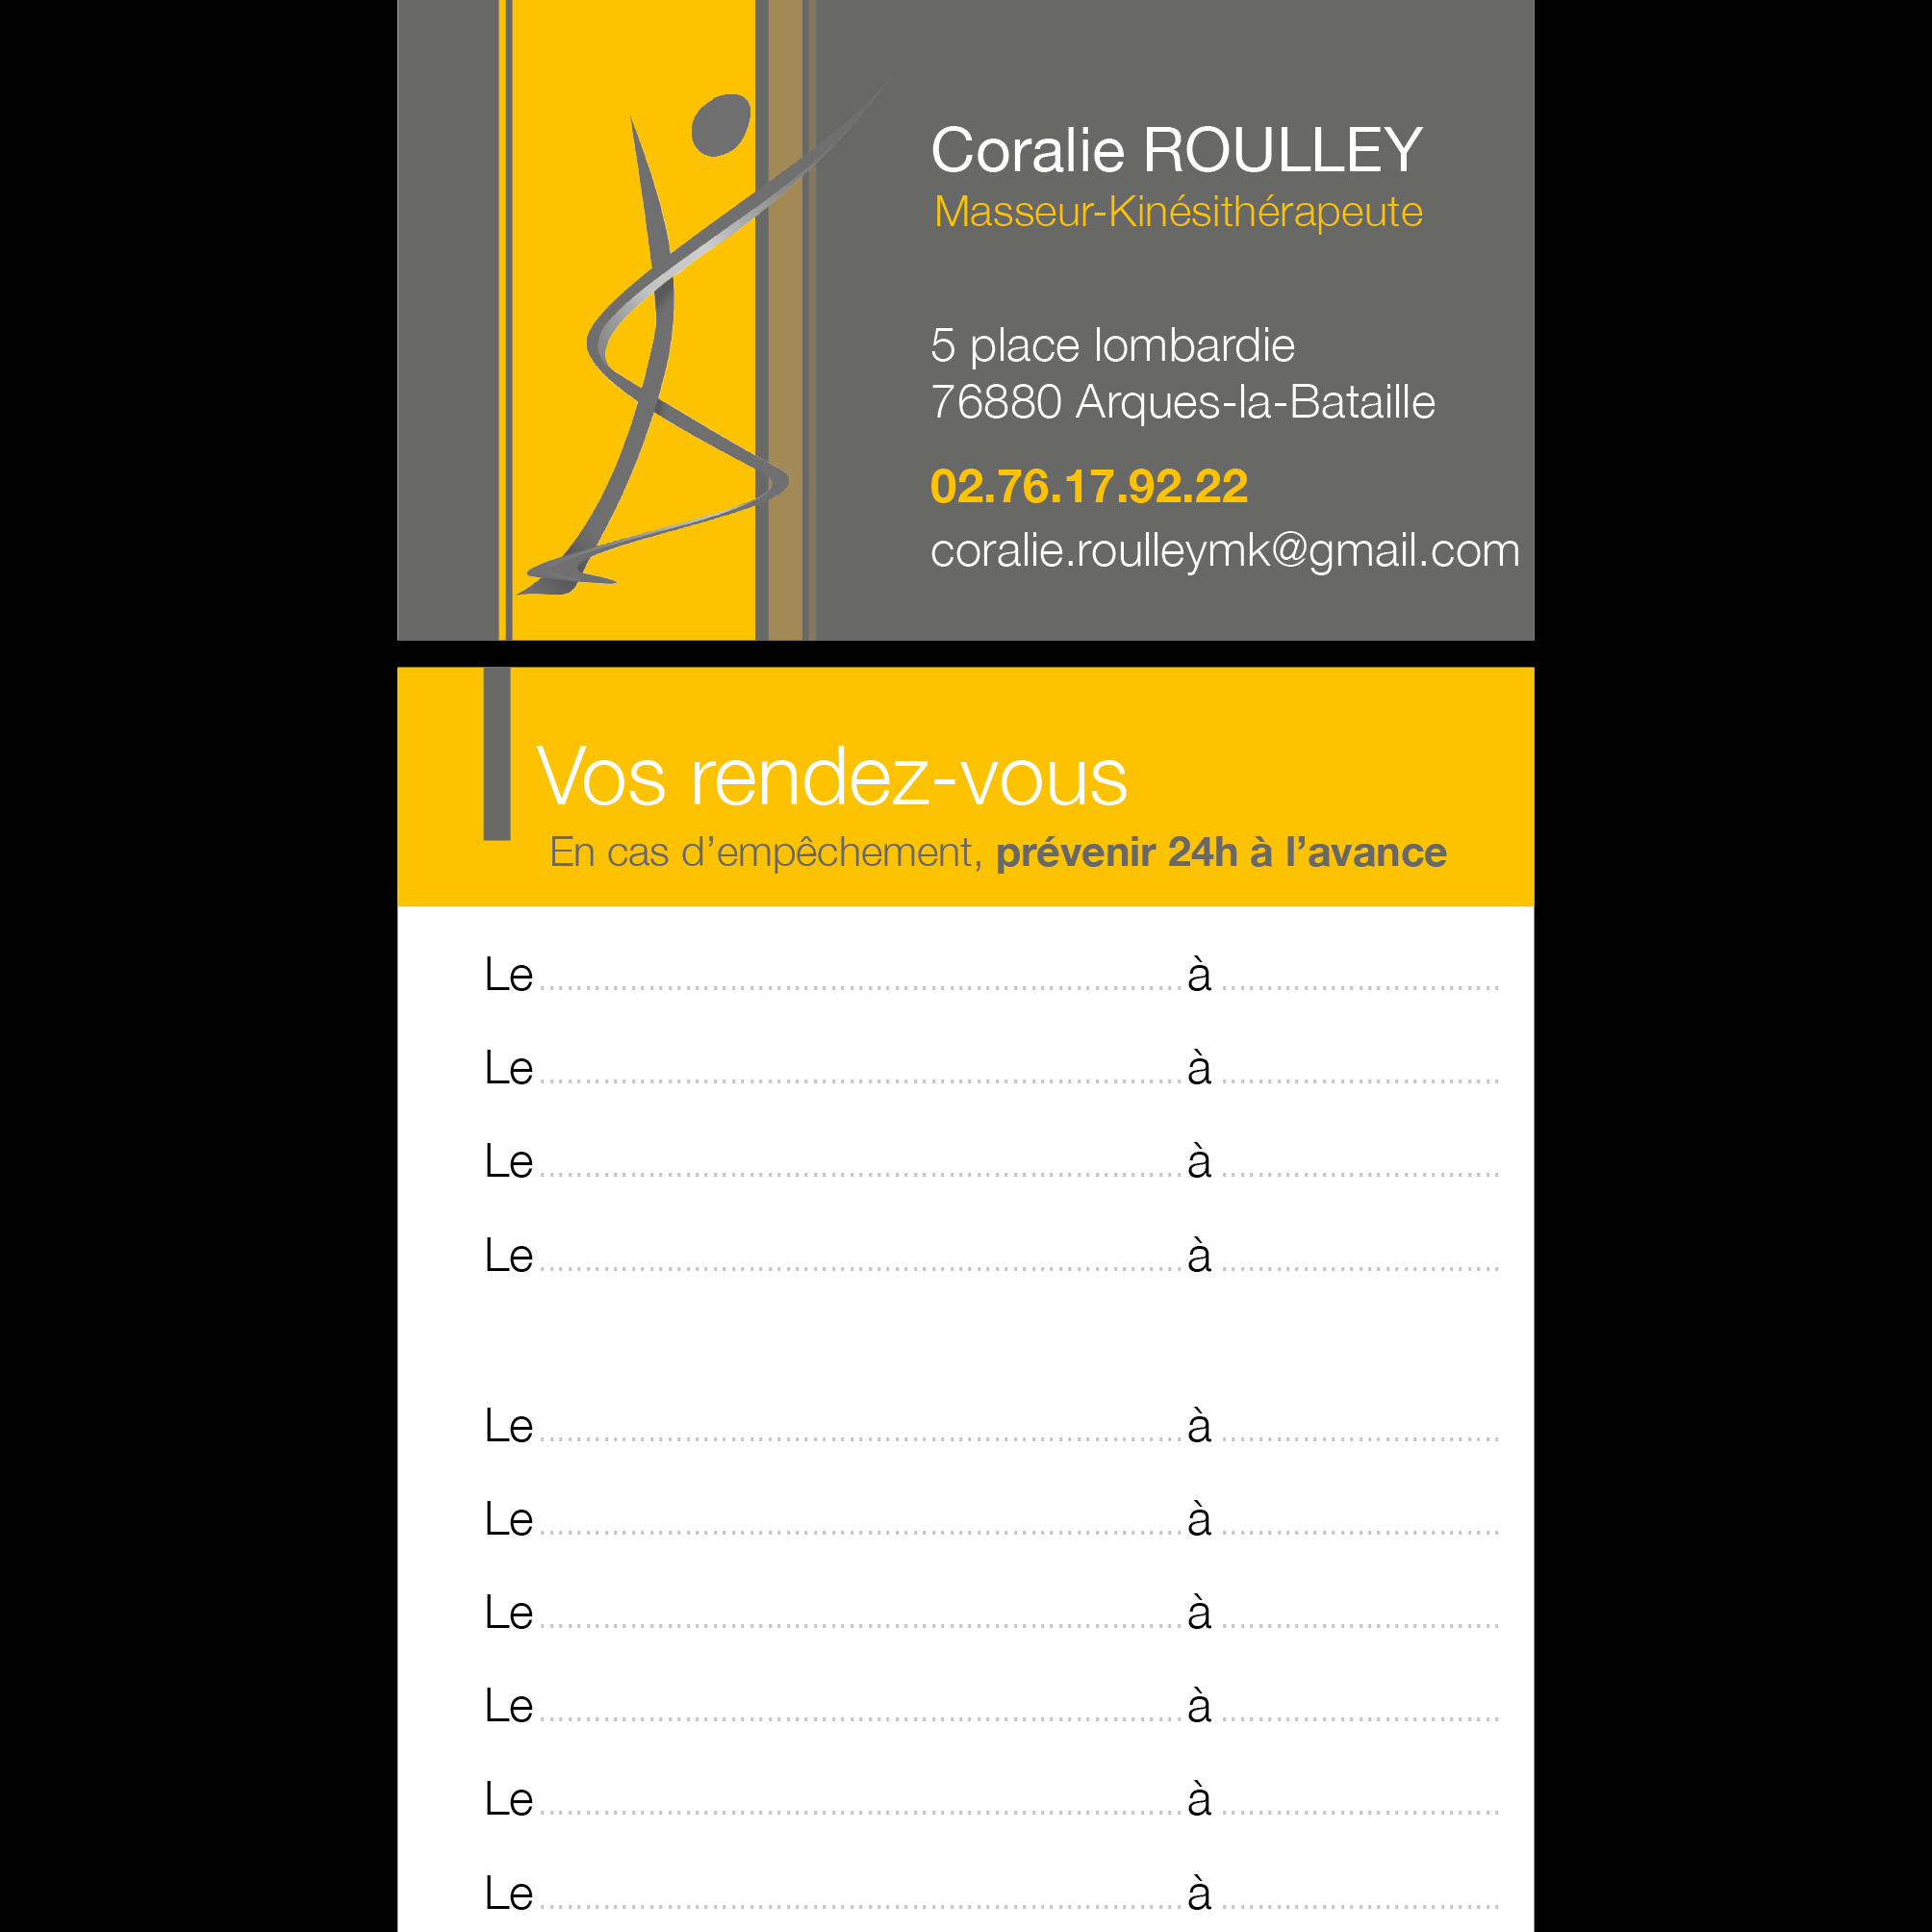 Coralie ROULLEY - Carte de RV